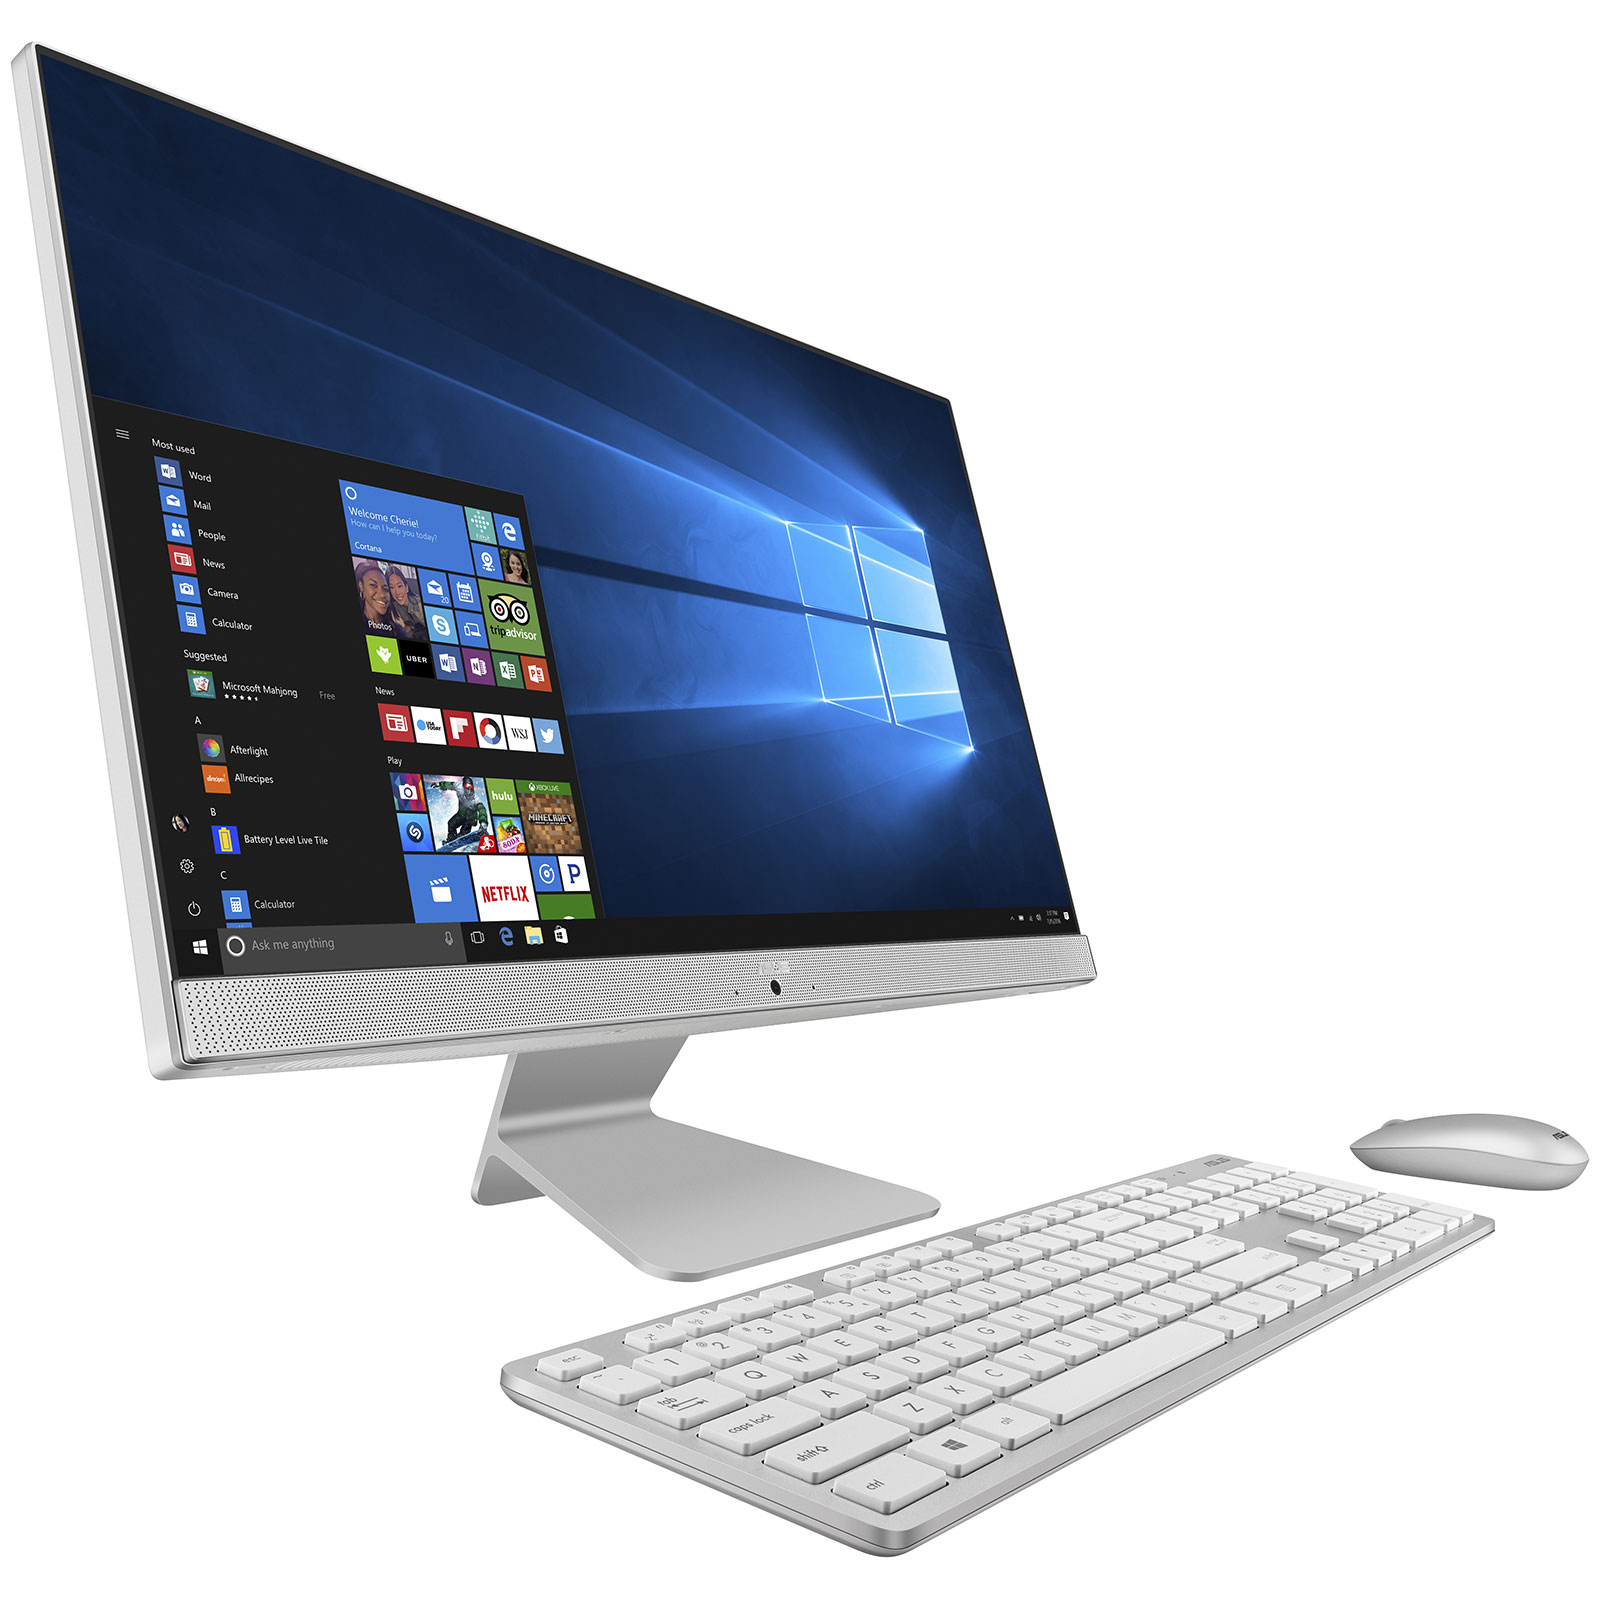 asus vivo aio v241icgk wa027t blanc pc de bureau asus sur. Black Bedroom Furniture Sets. Home Design Ideas